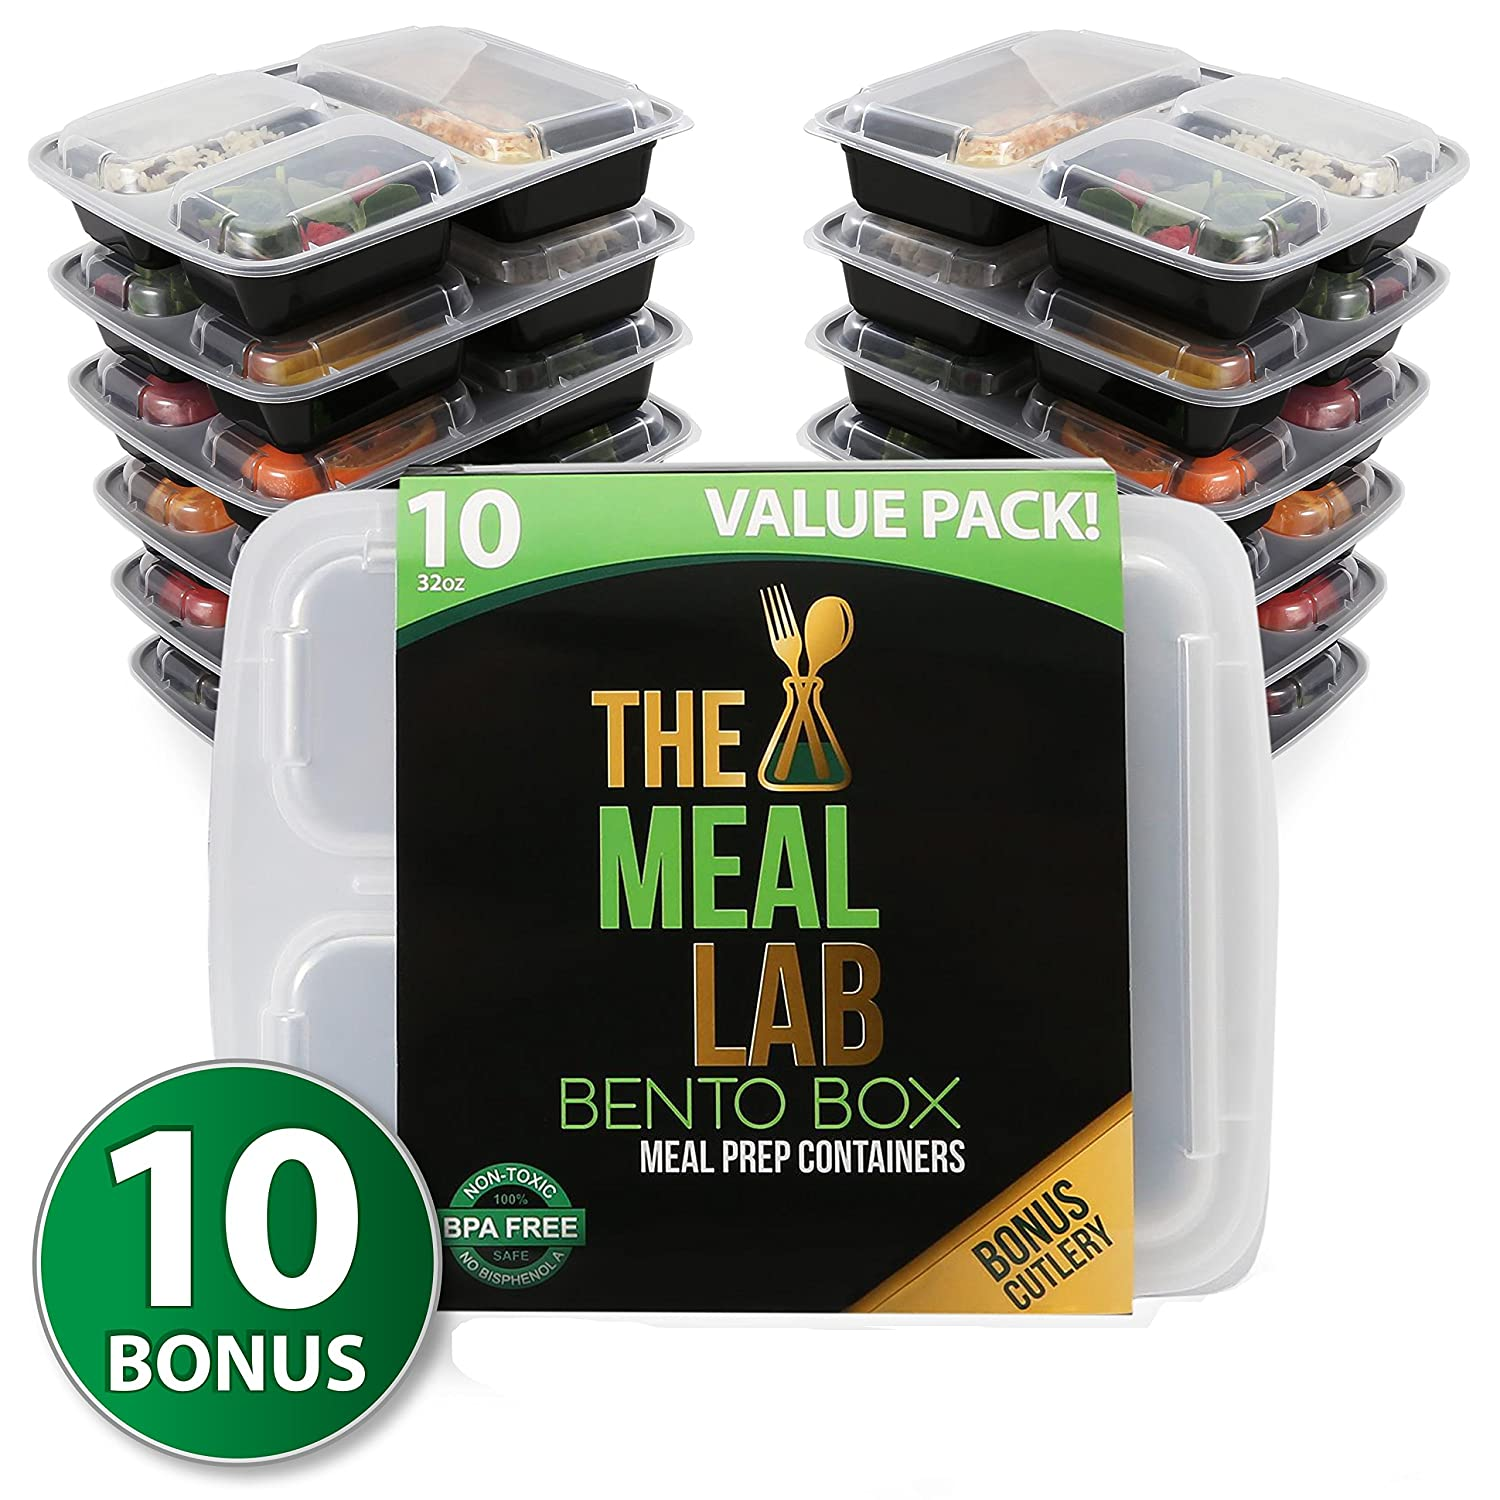 [BONUS-PACK] Long Lasting 3-Compartment BPA FREE Stackable Meal Prep Food Storage Containers with Lids | Microwave & Dishwasher Safe Bento Lunch Box | Portion Control Plates + FREE Weight Loss Book